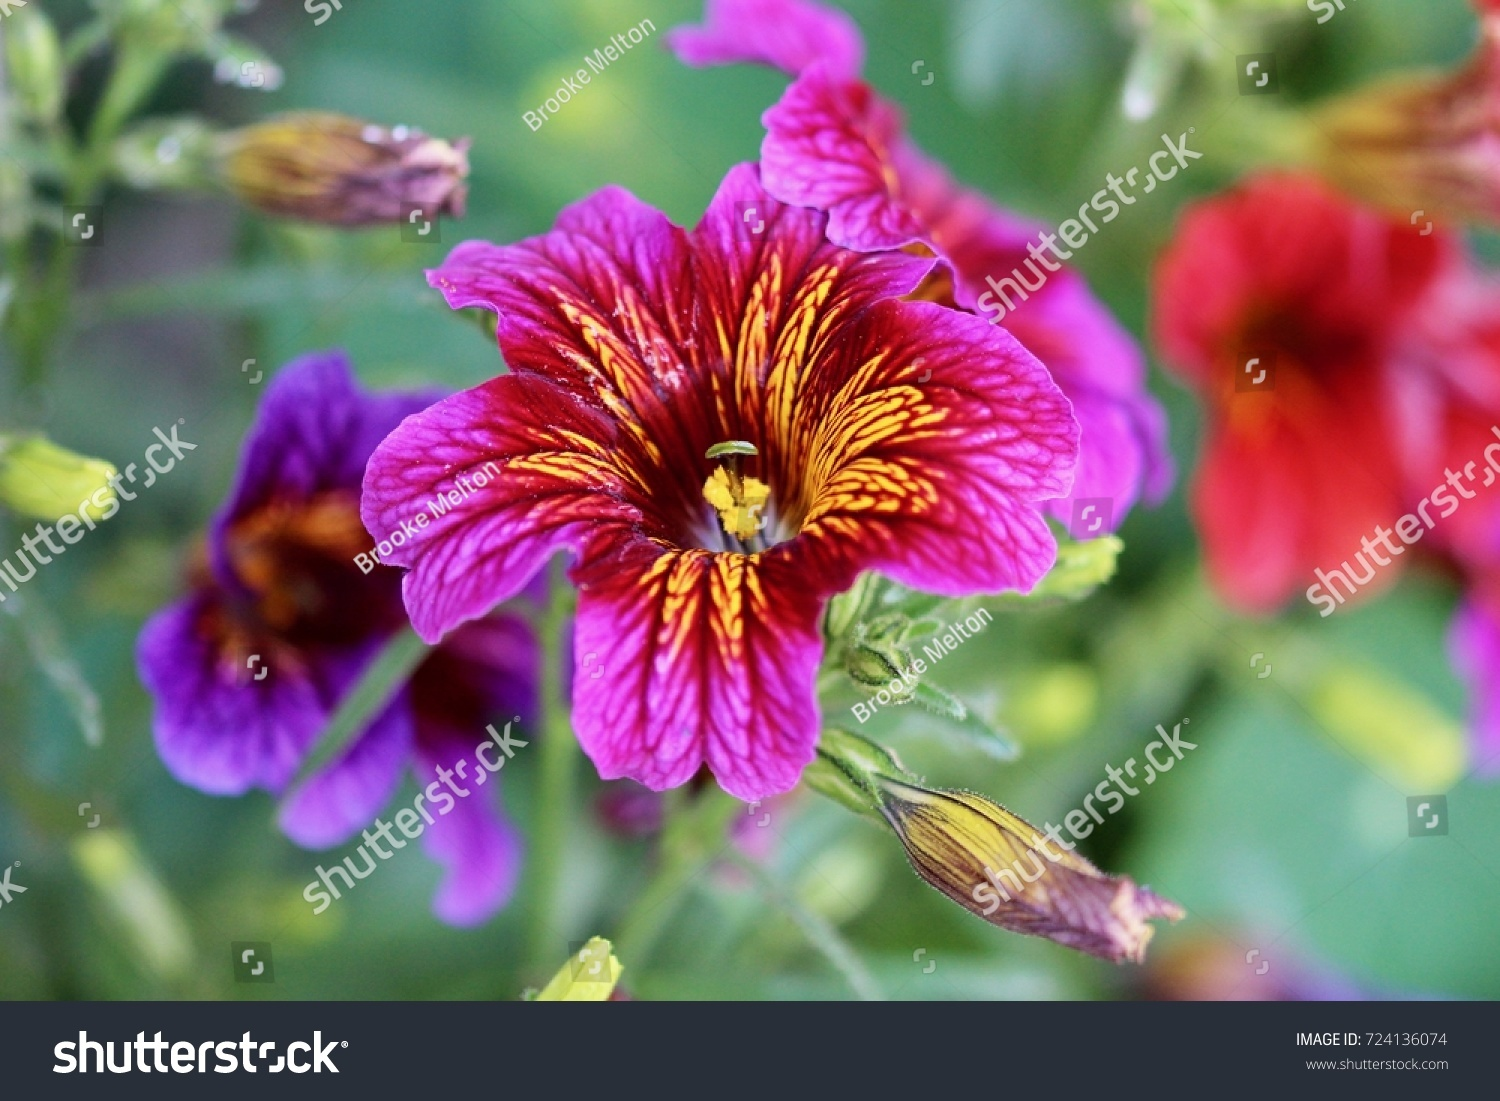 Dark Pink And Purple Flowers With Yellow Stripes And A Blurred Green